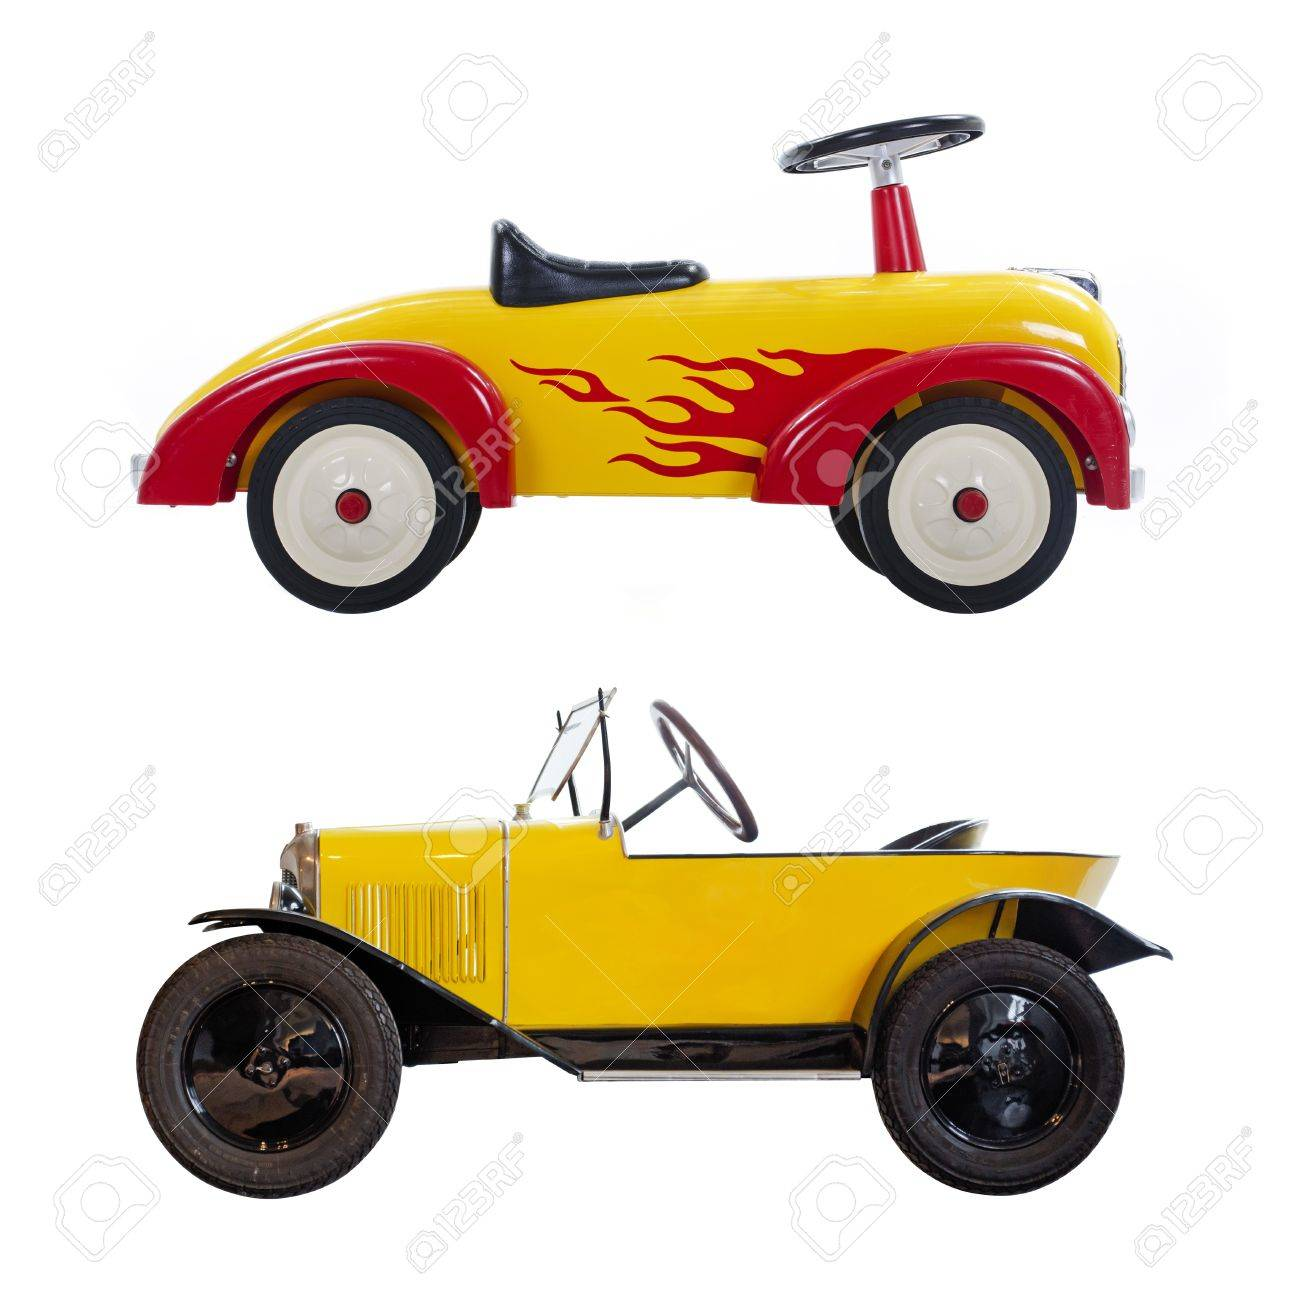 Toy car for toddler Stock Photo - 19587714